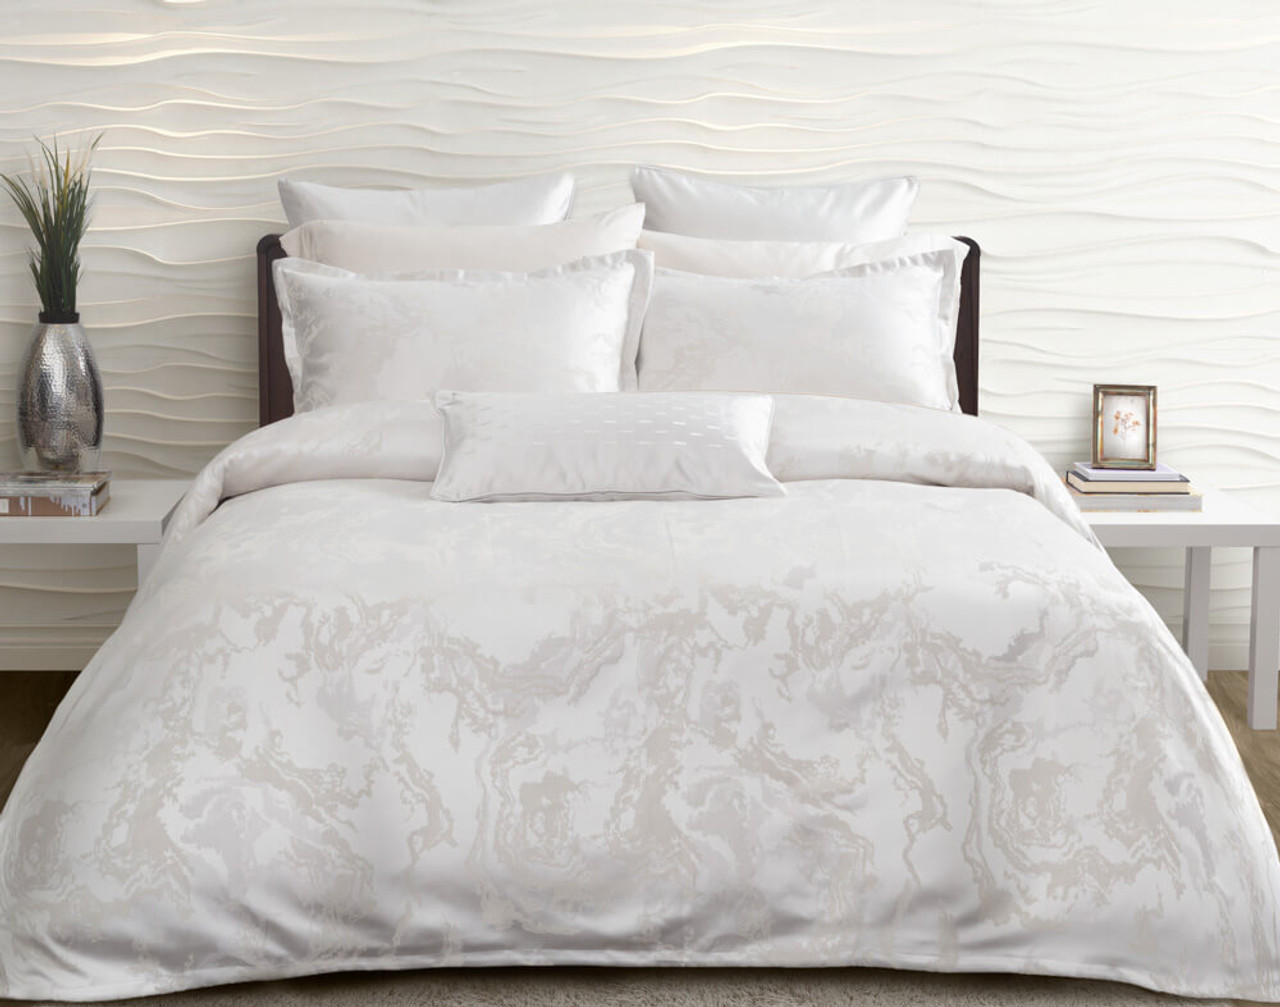 Travertine Bedding Collection features a stone-inspired jacquard in soft white, silver, and cream, and is finished with a 1-inch flange.